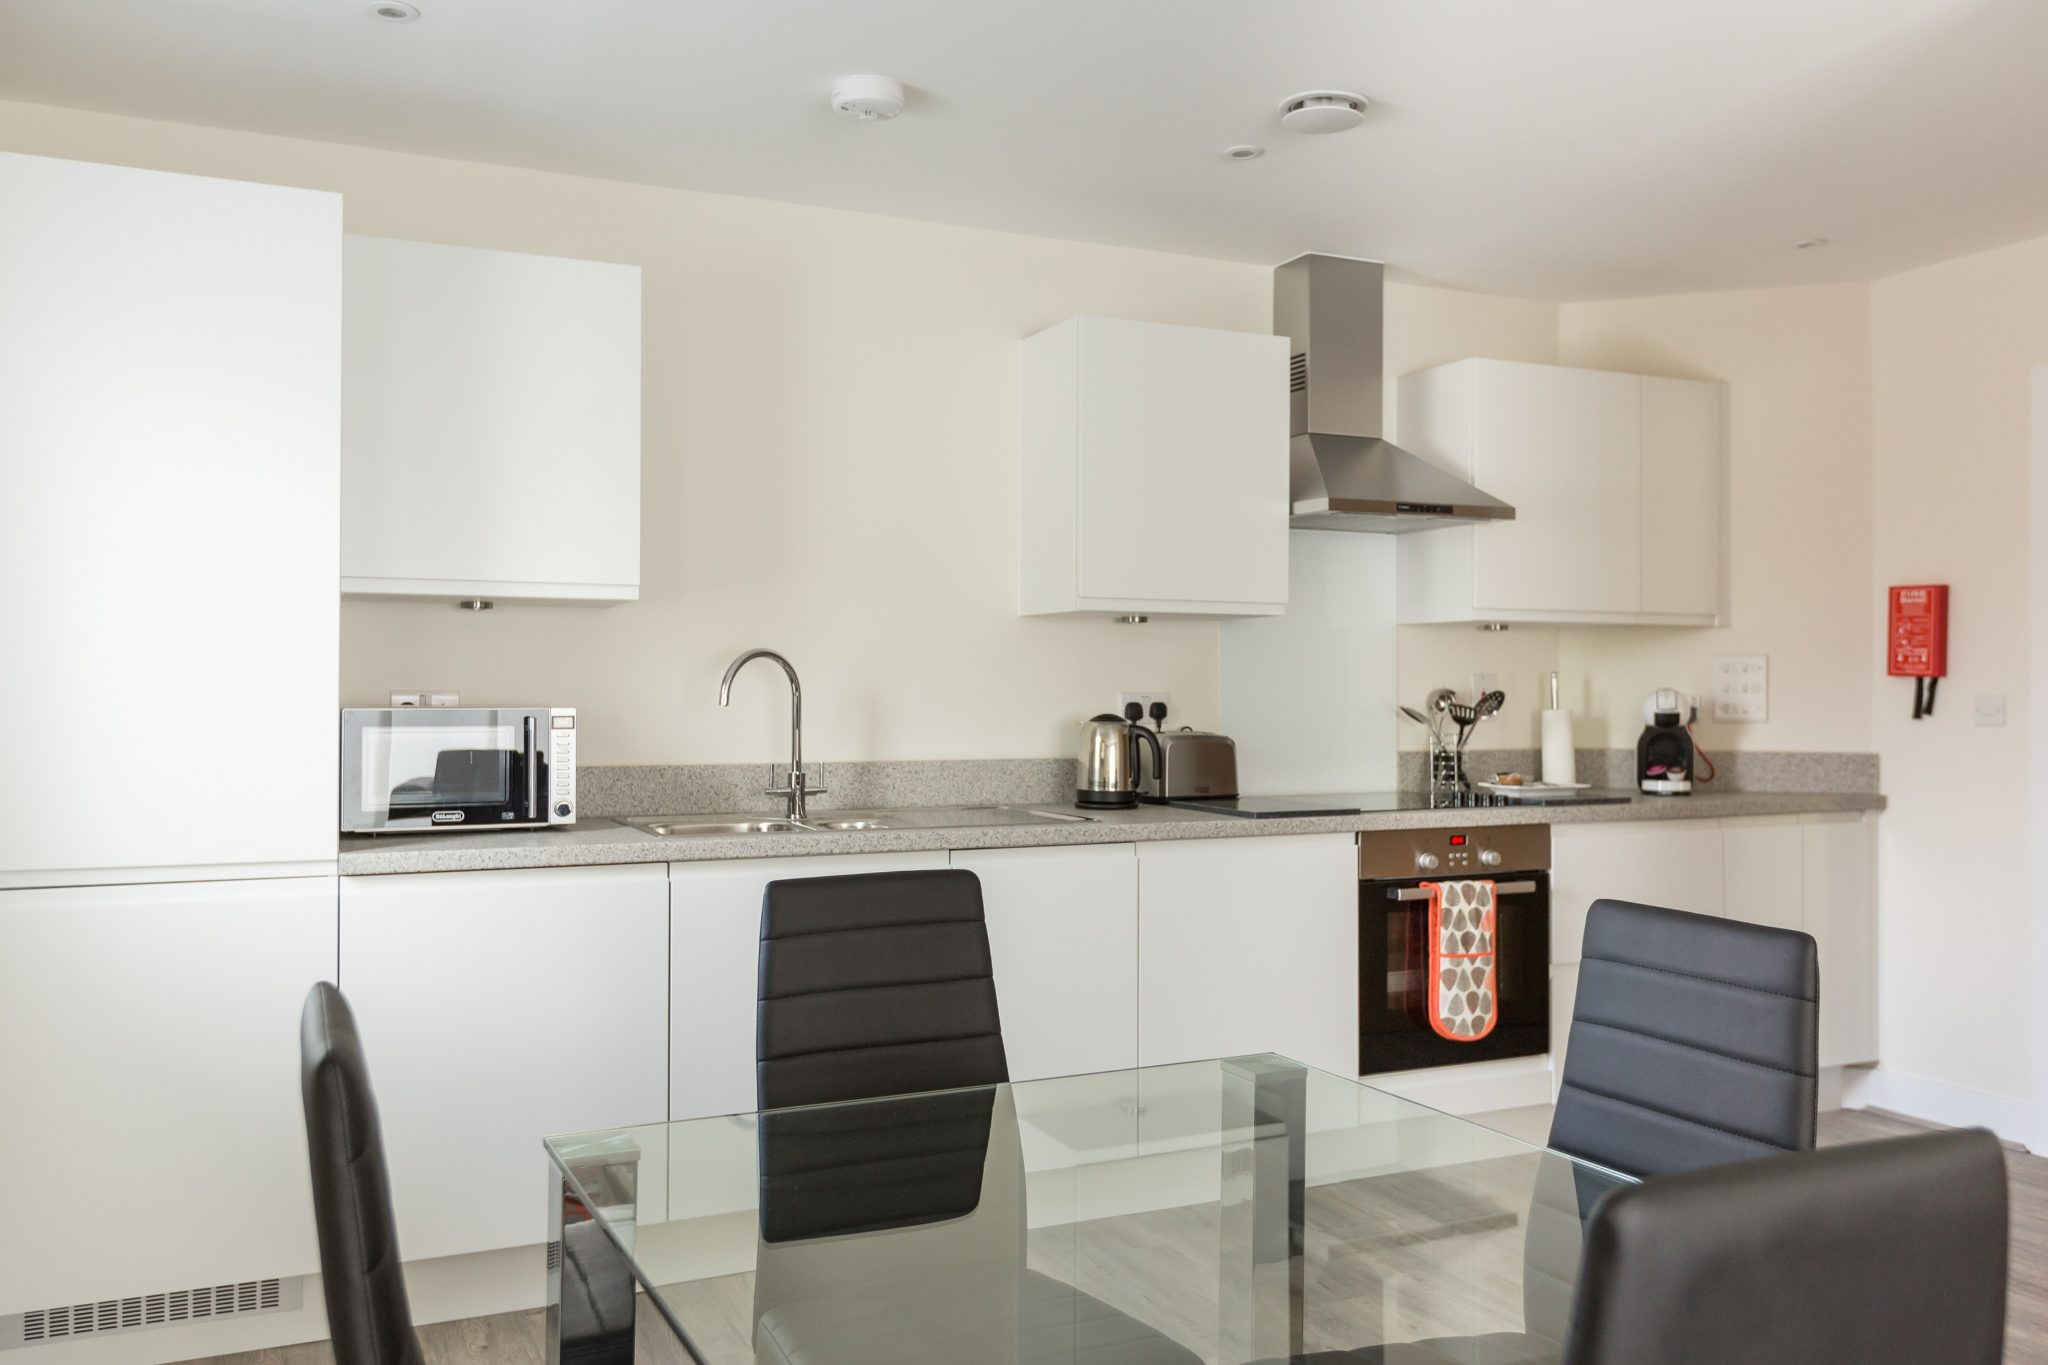 Solstice-House-Serviced-Apartments-Farnborough---Corporate-Accommodation-UK-|-Urban-Stay